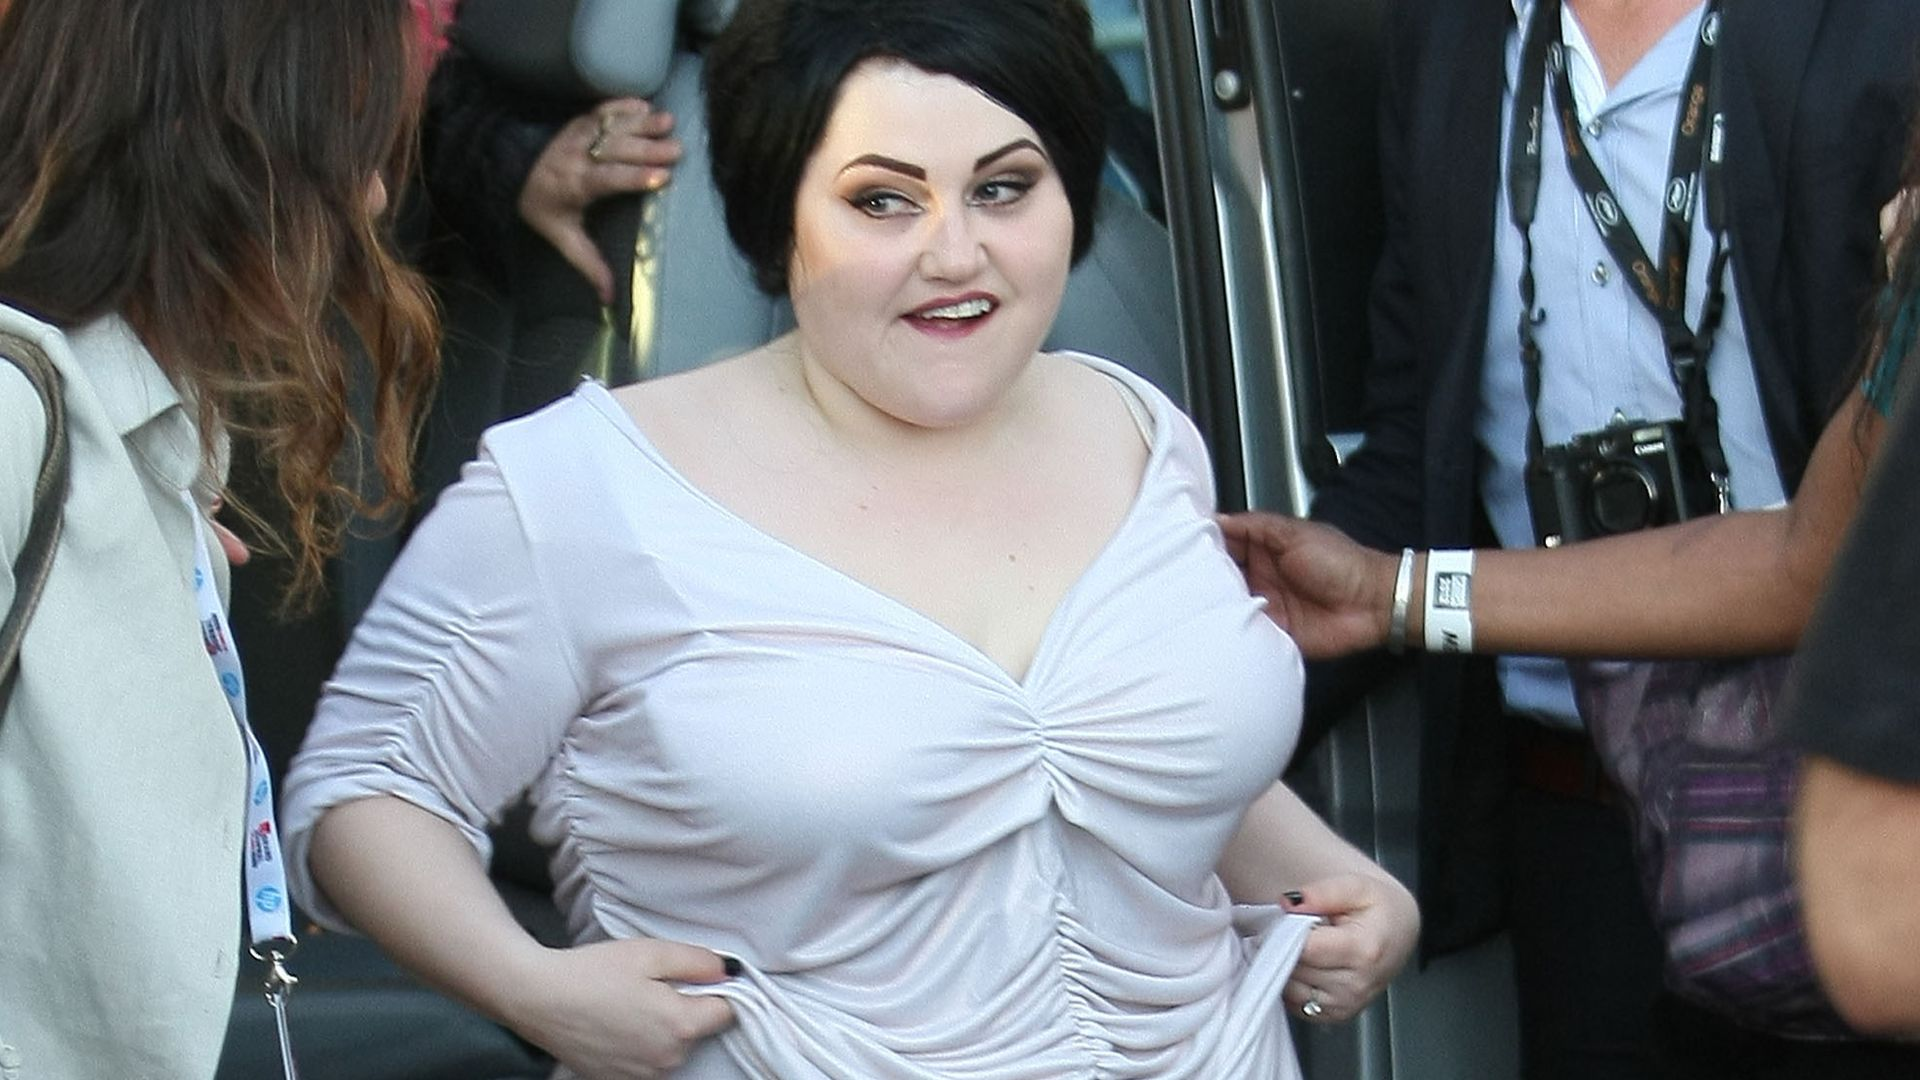 Partyluder ade! Beth Ditto ist jetzt Couch-Potato  Promiflash.de